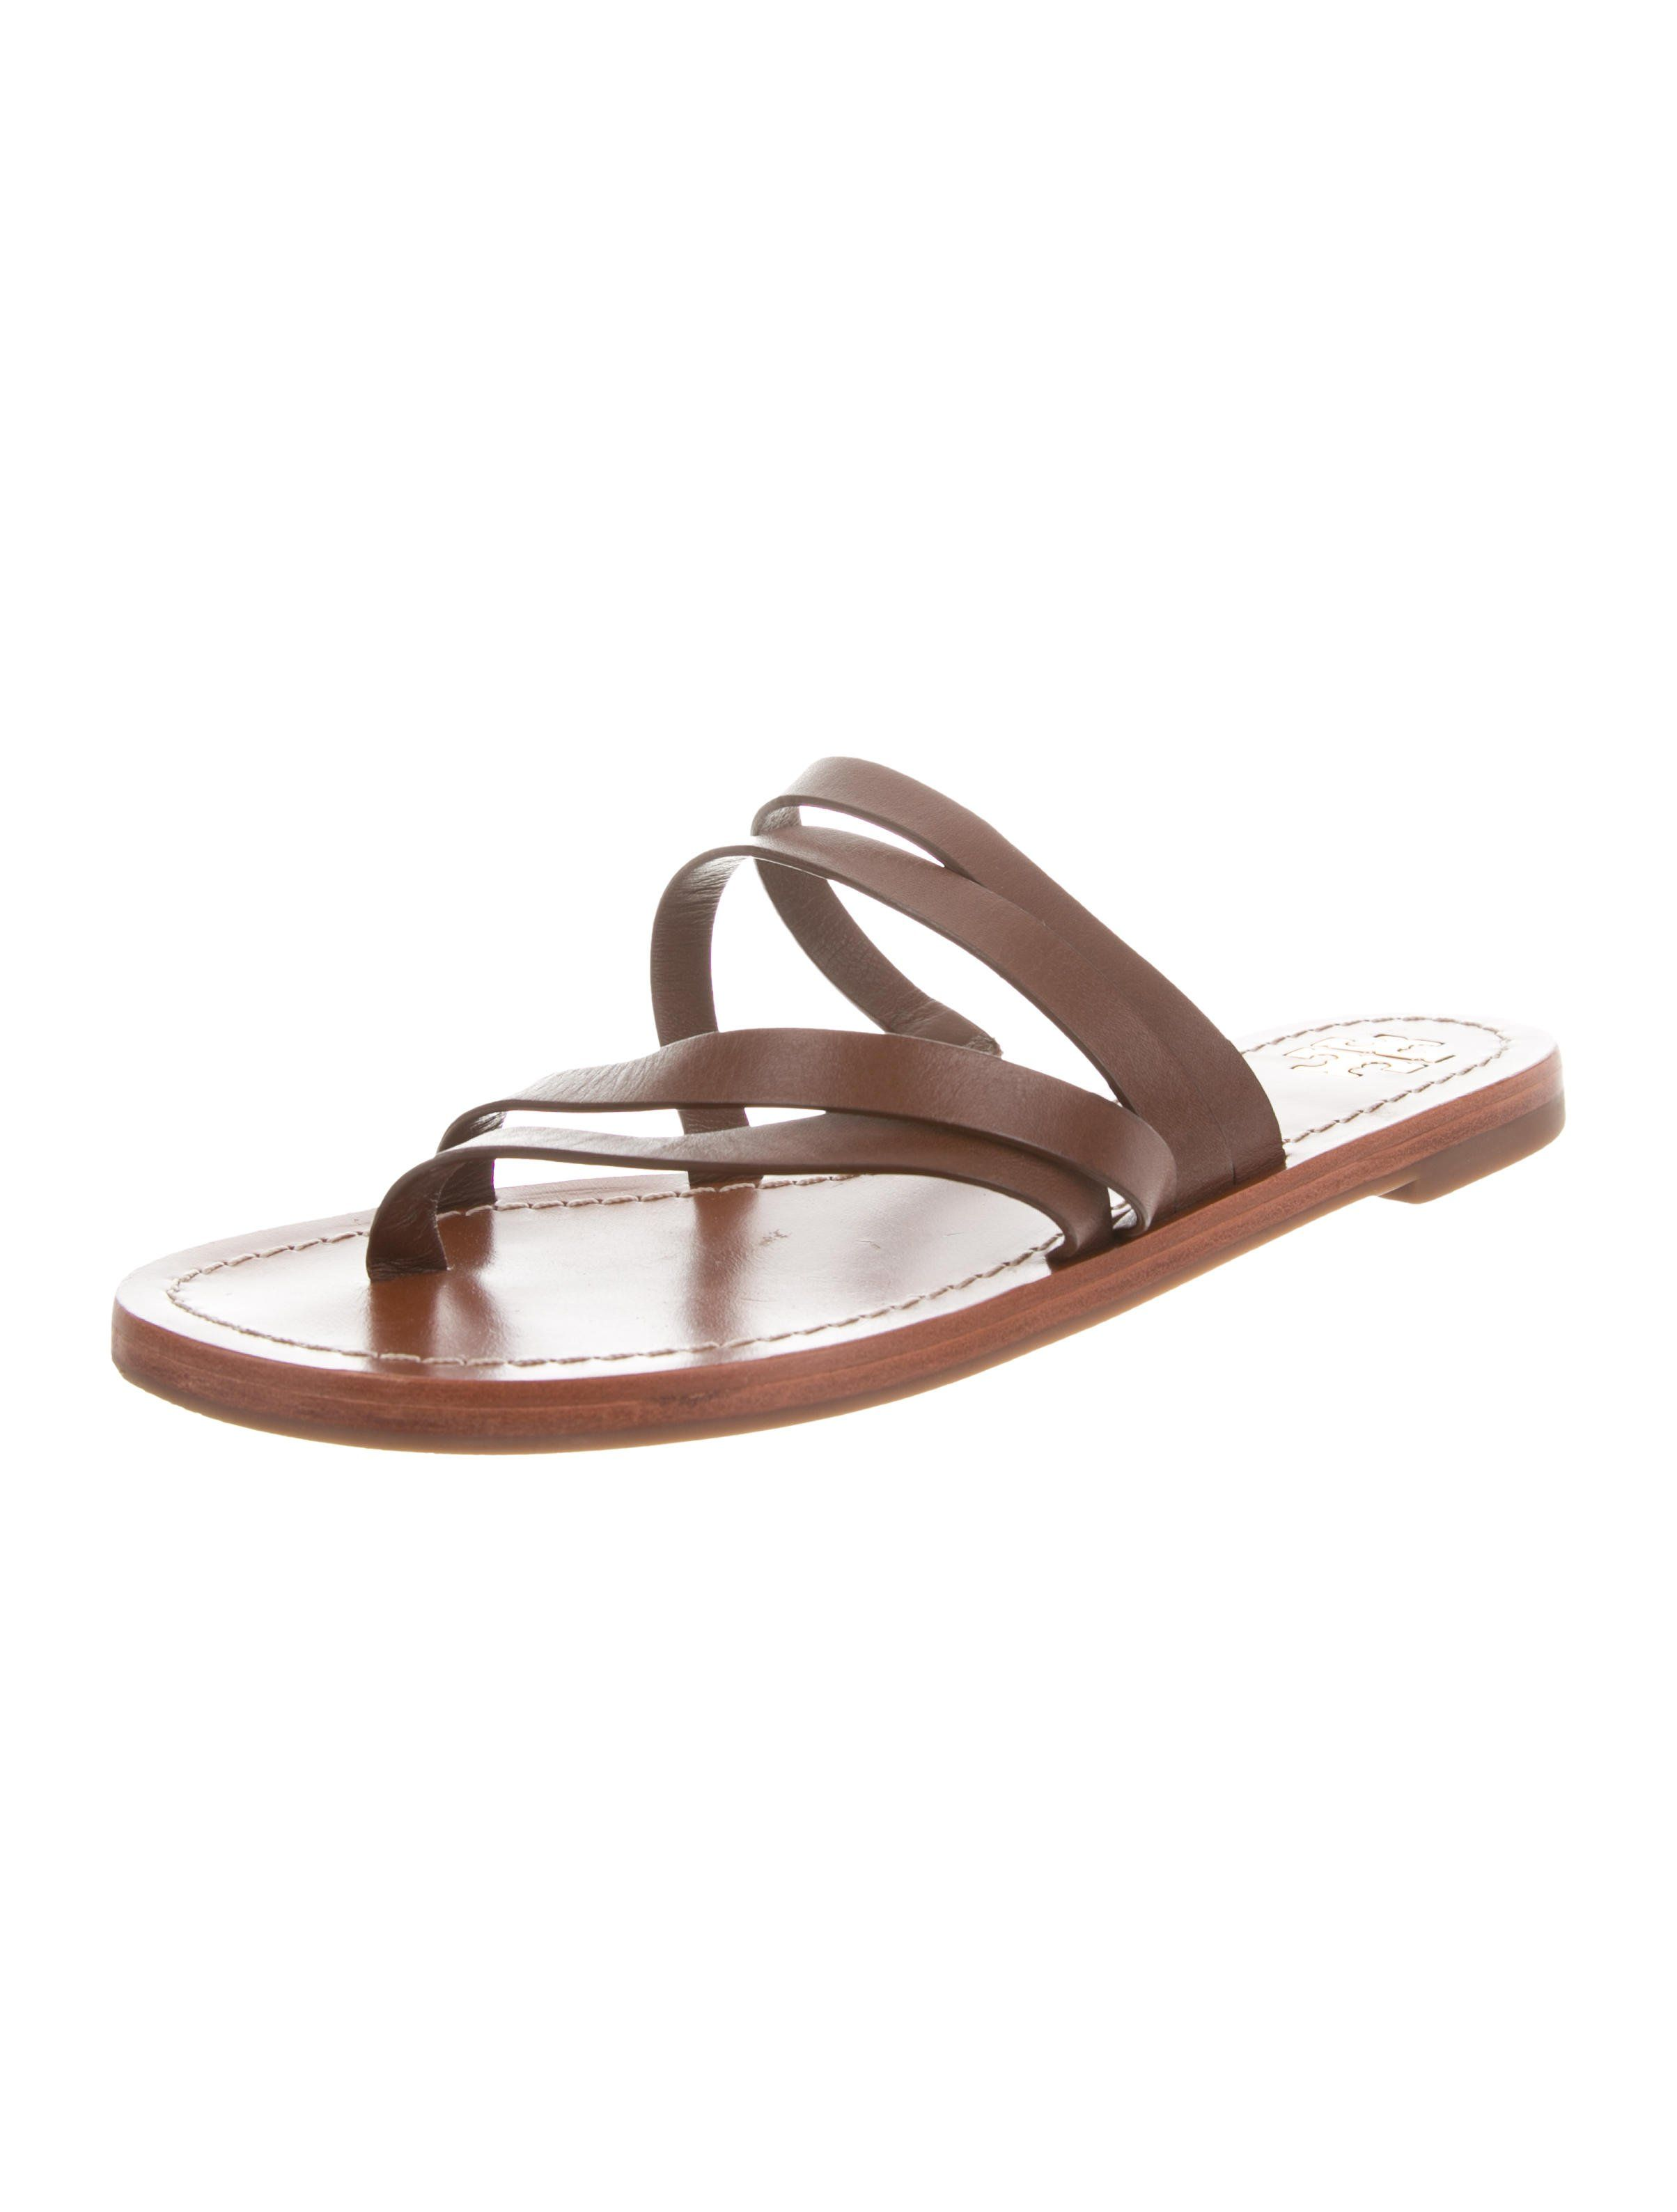 52a5ba5f4 Brown leather Tory Burch slide sandals with crossover straps and rubber  soles. Includes dust bag